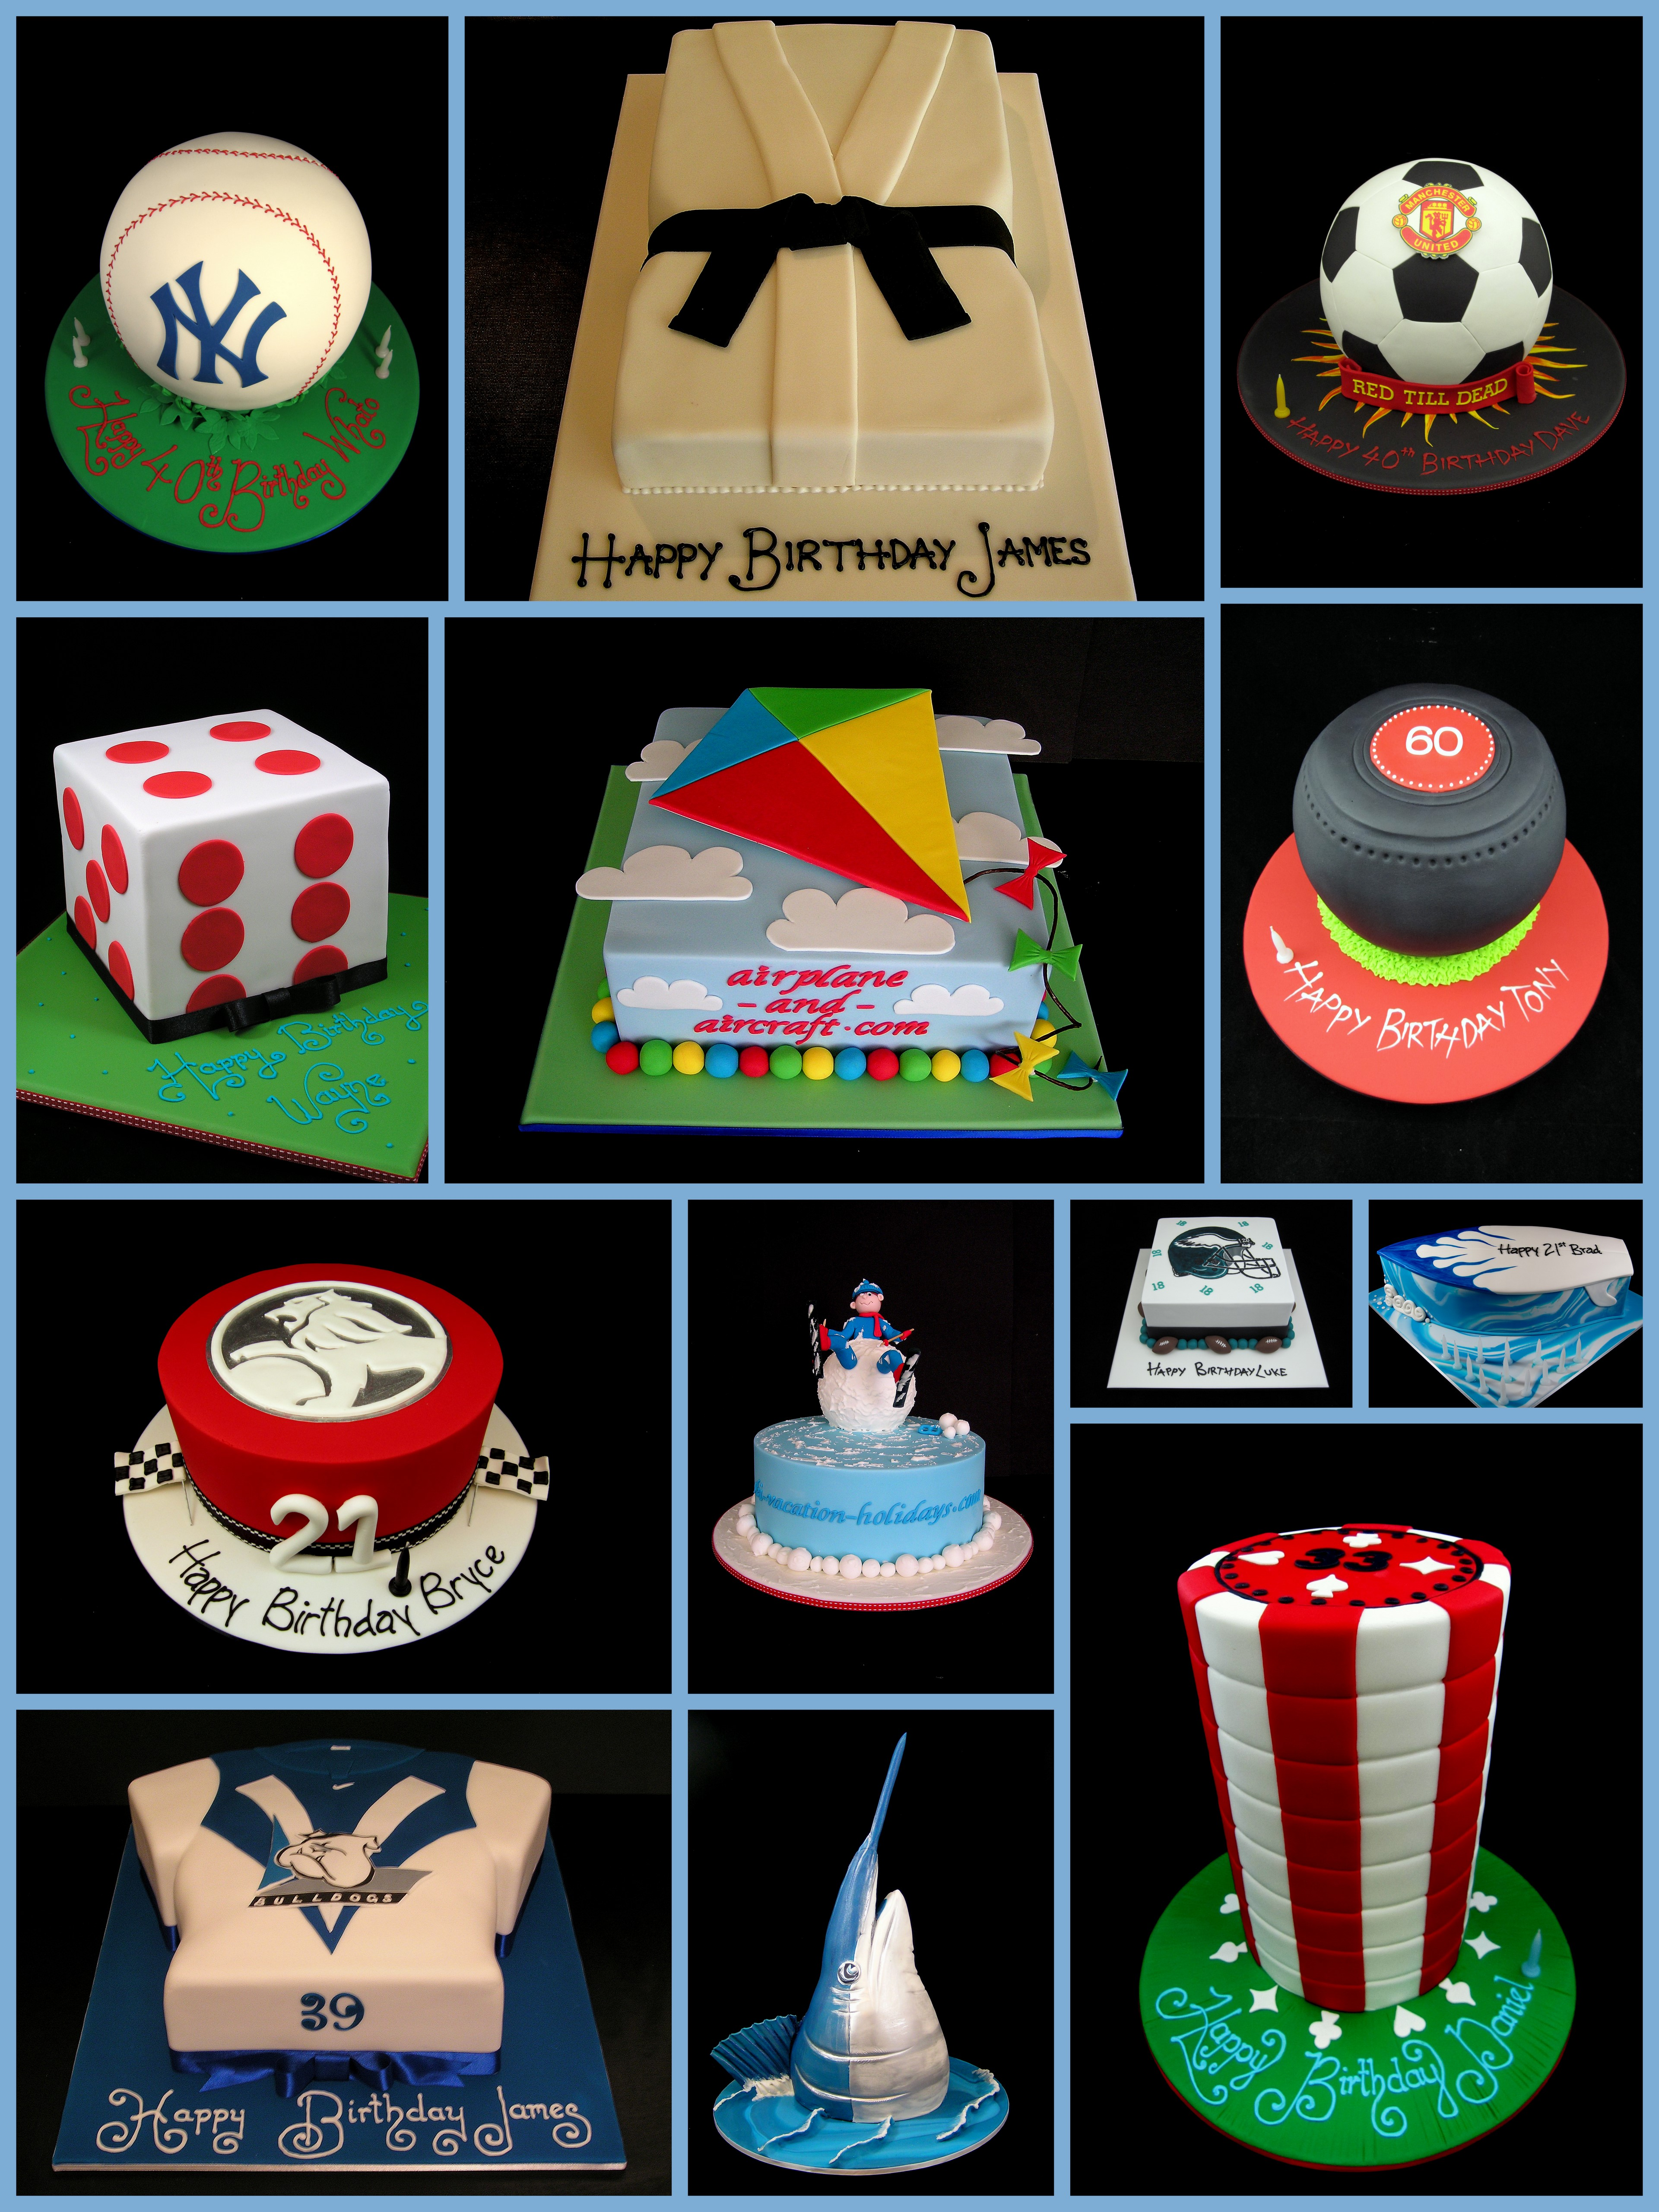 Sports Novelty Cakes Usually For Men